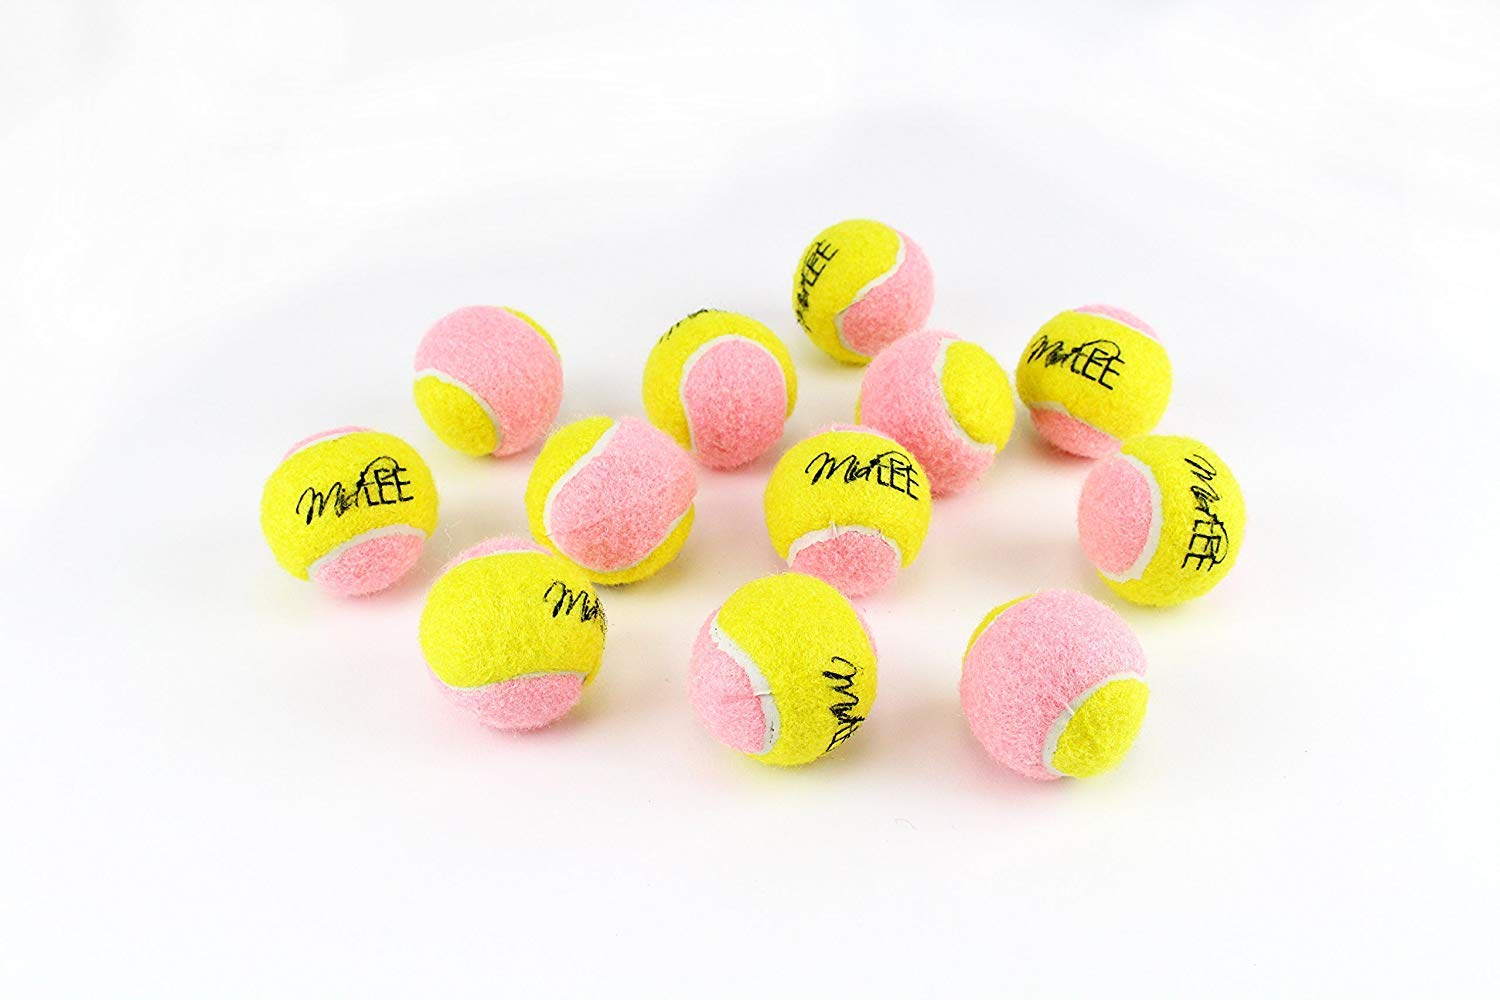 Midlee X-Small Dog Tennis Balls 1.5'' Pack of 12 (Pink/Yellow, 1.5 inch) by Midlee